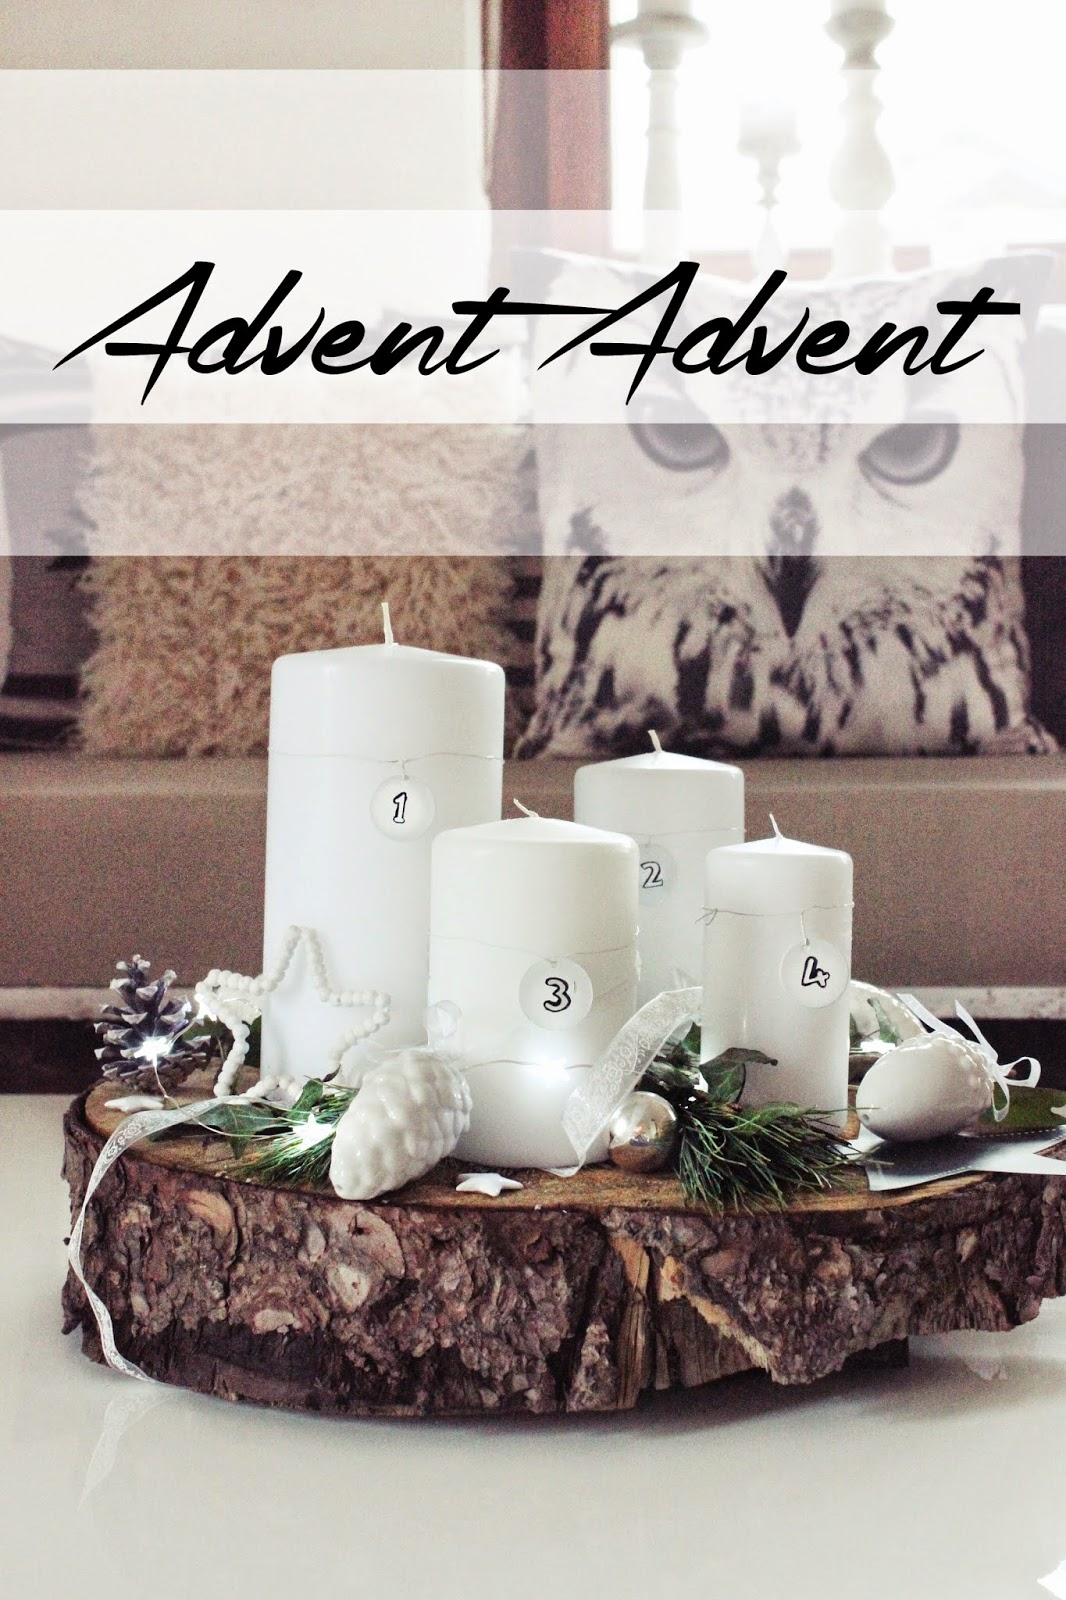 S 39 bastelkistle diy simpler adventskranz - Pinterest advent ...